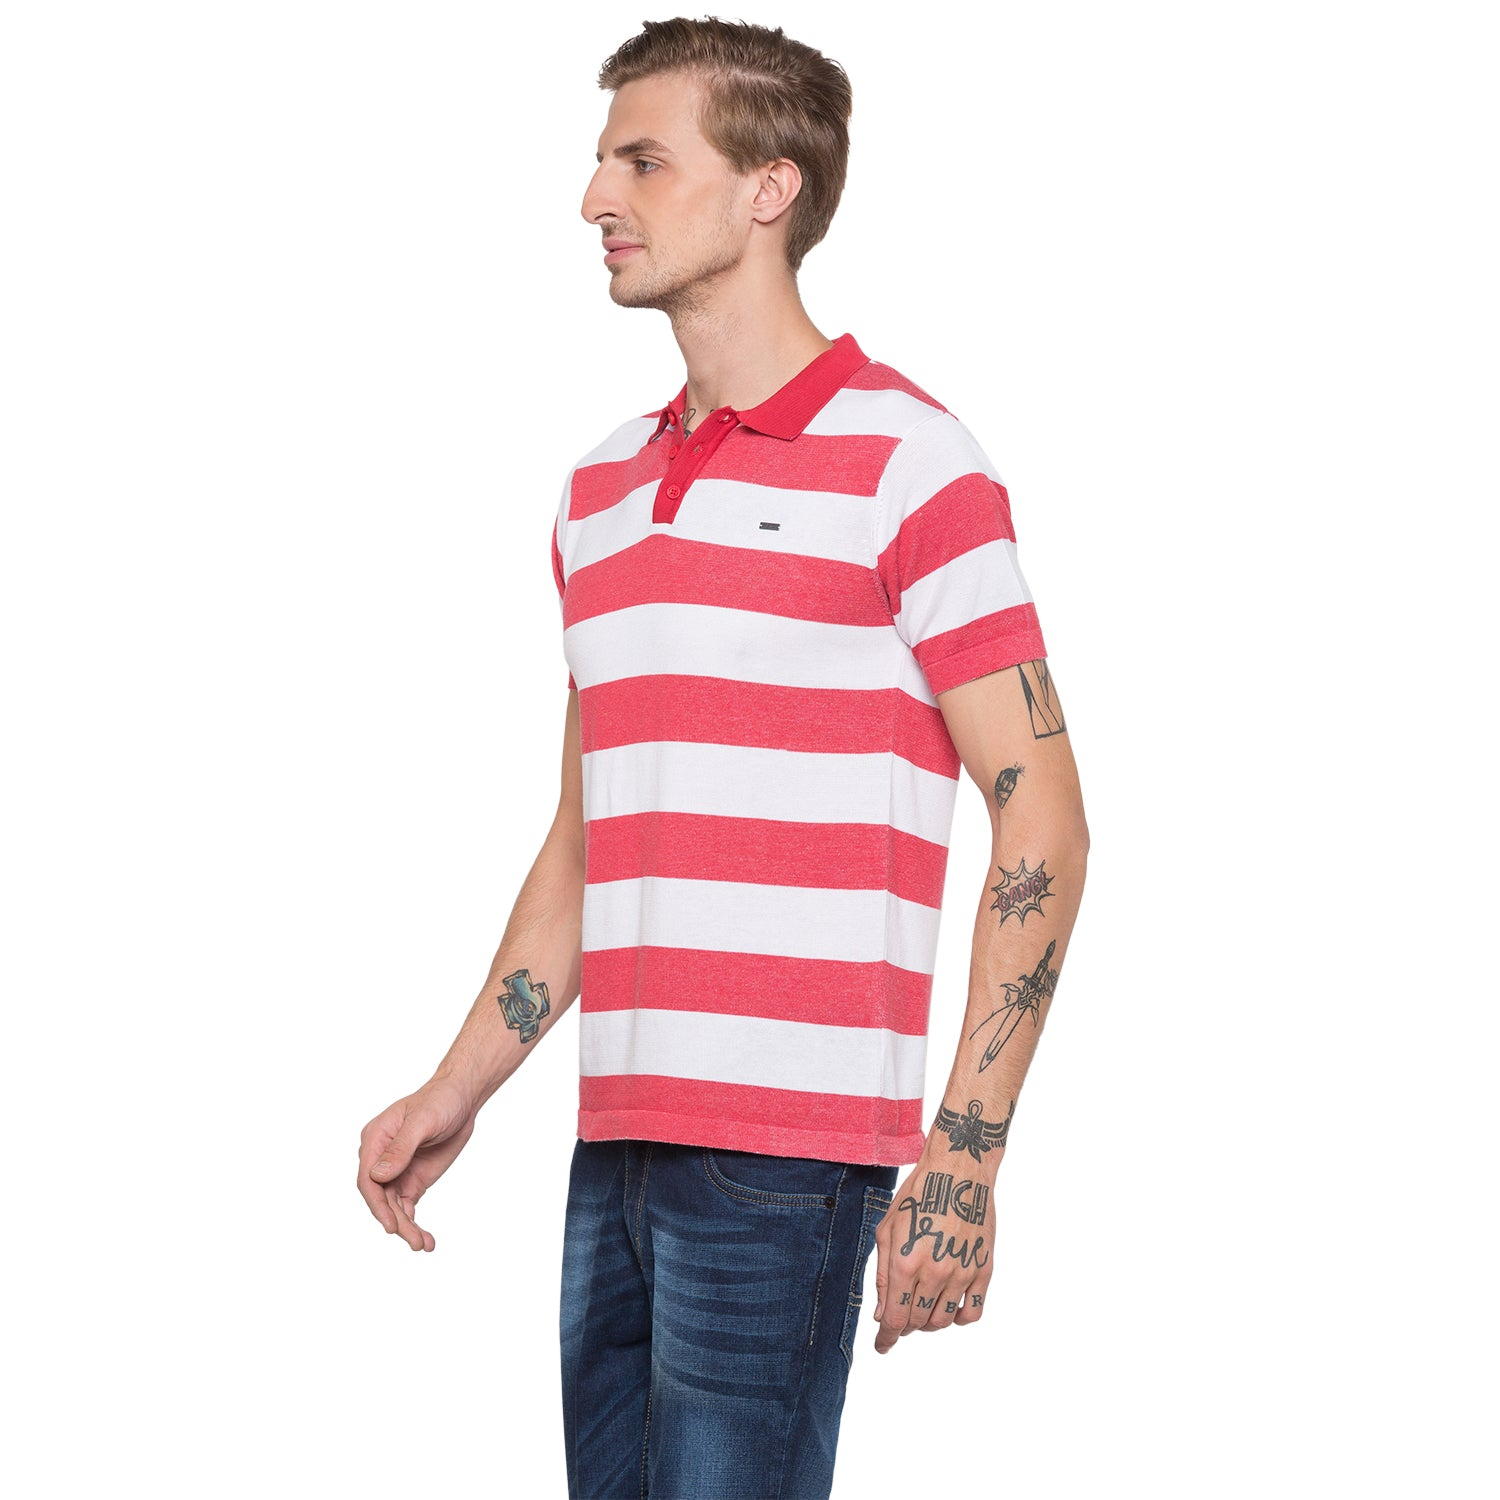 Globus White Striped Polo T-Shirt-2